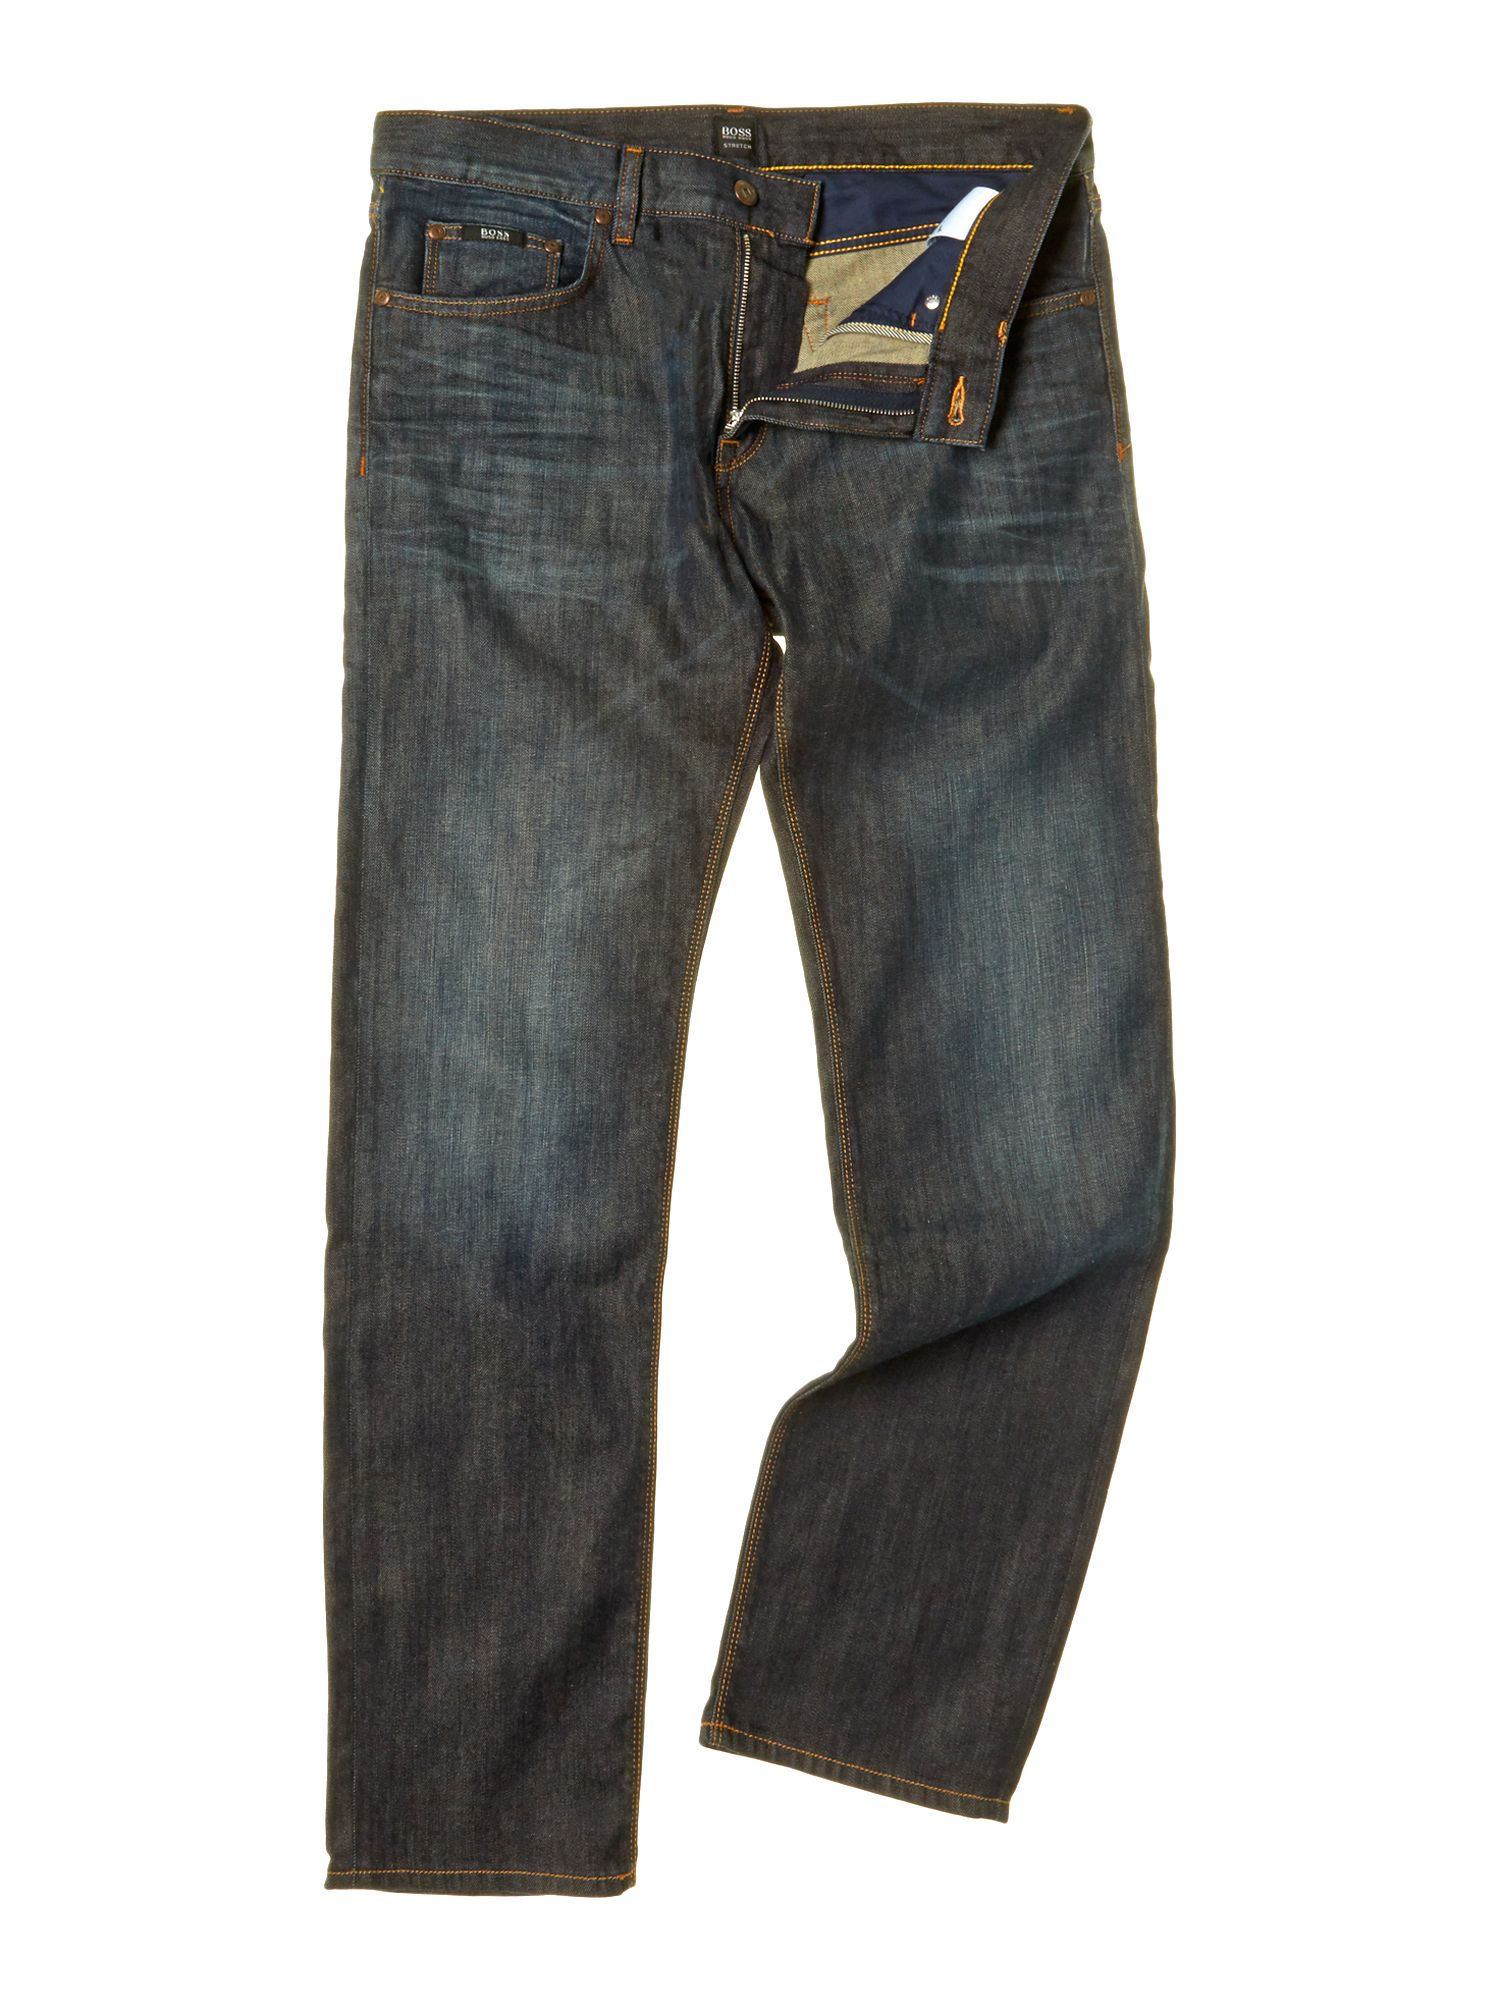 Maine regular straight dark wash used